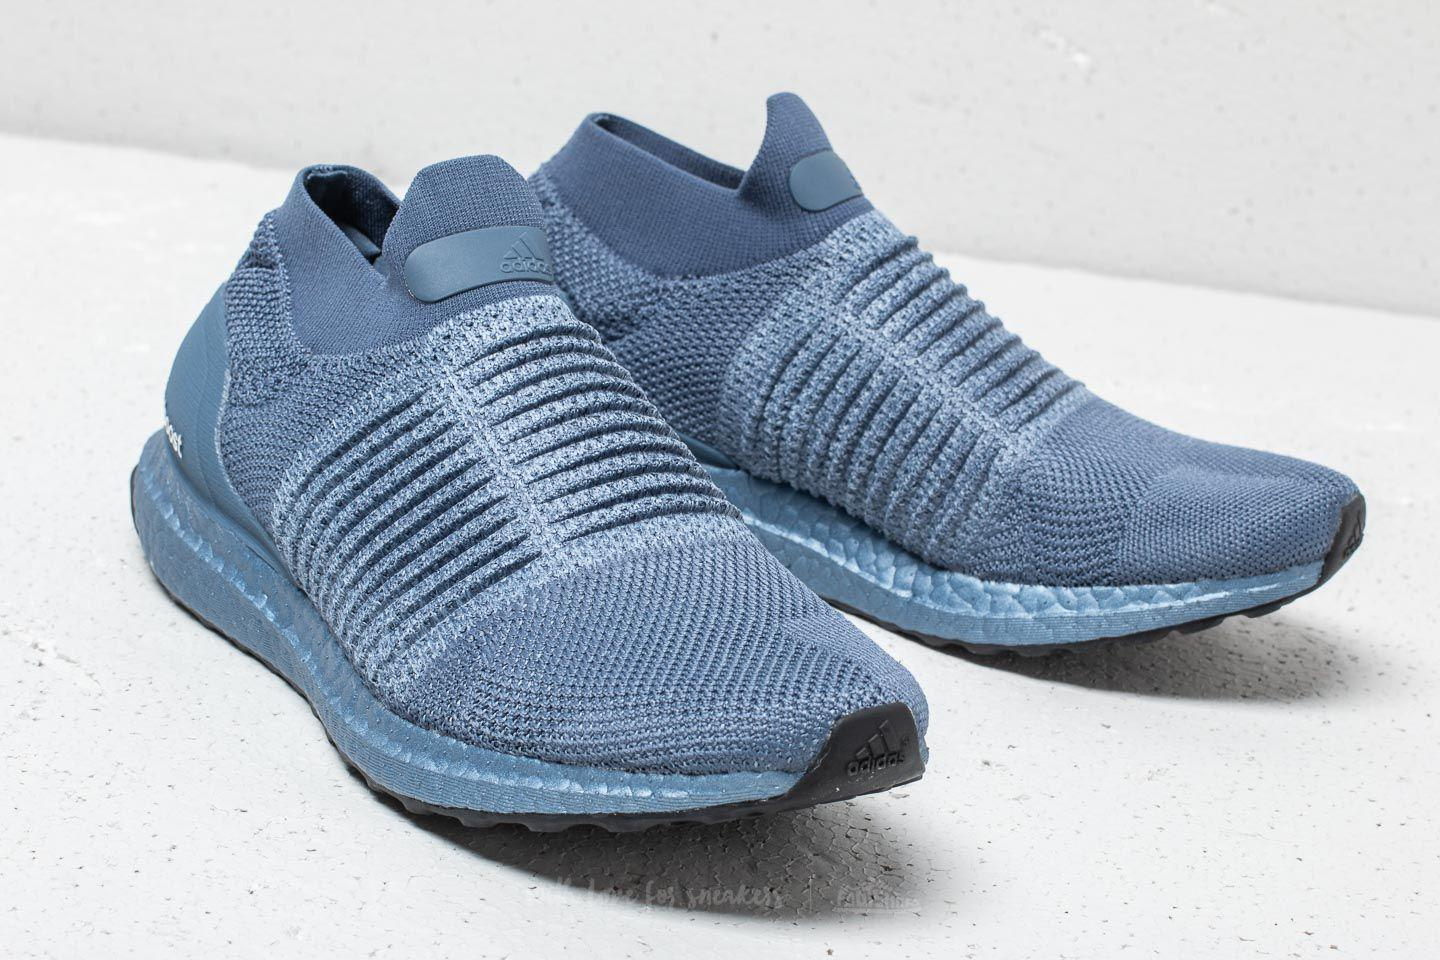 new product accb3 b0ae3 Lyst - adidas Originals Adidas Ultraboost Laceless W Tech In